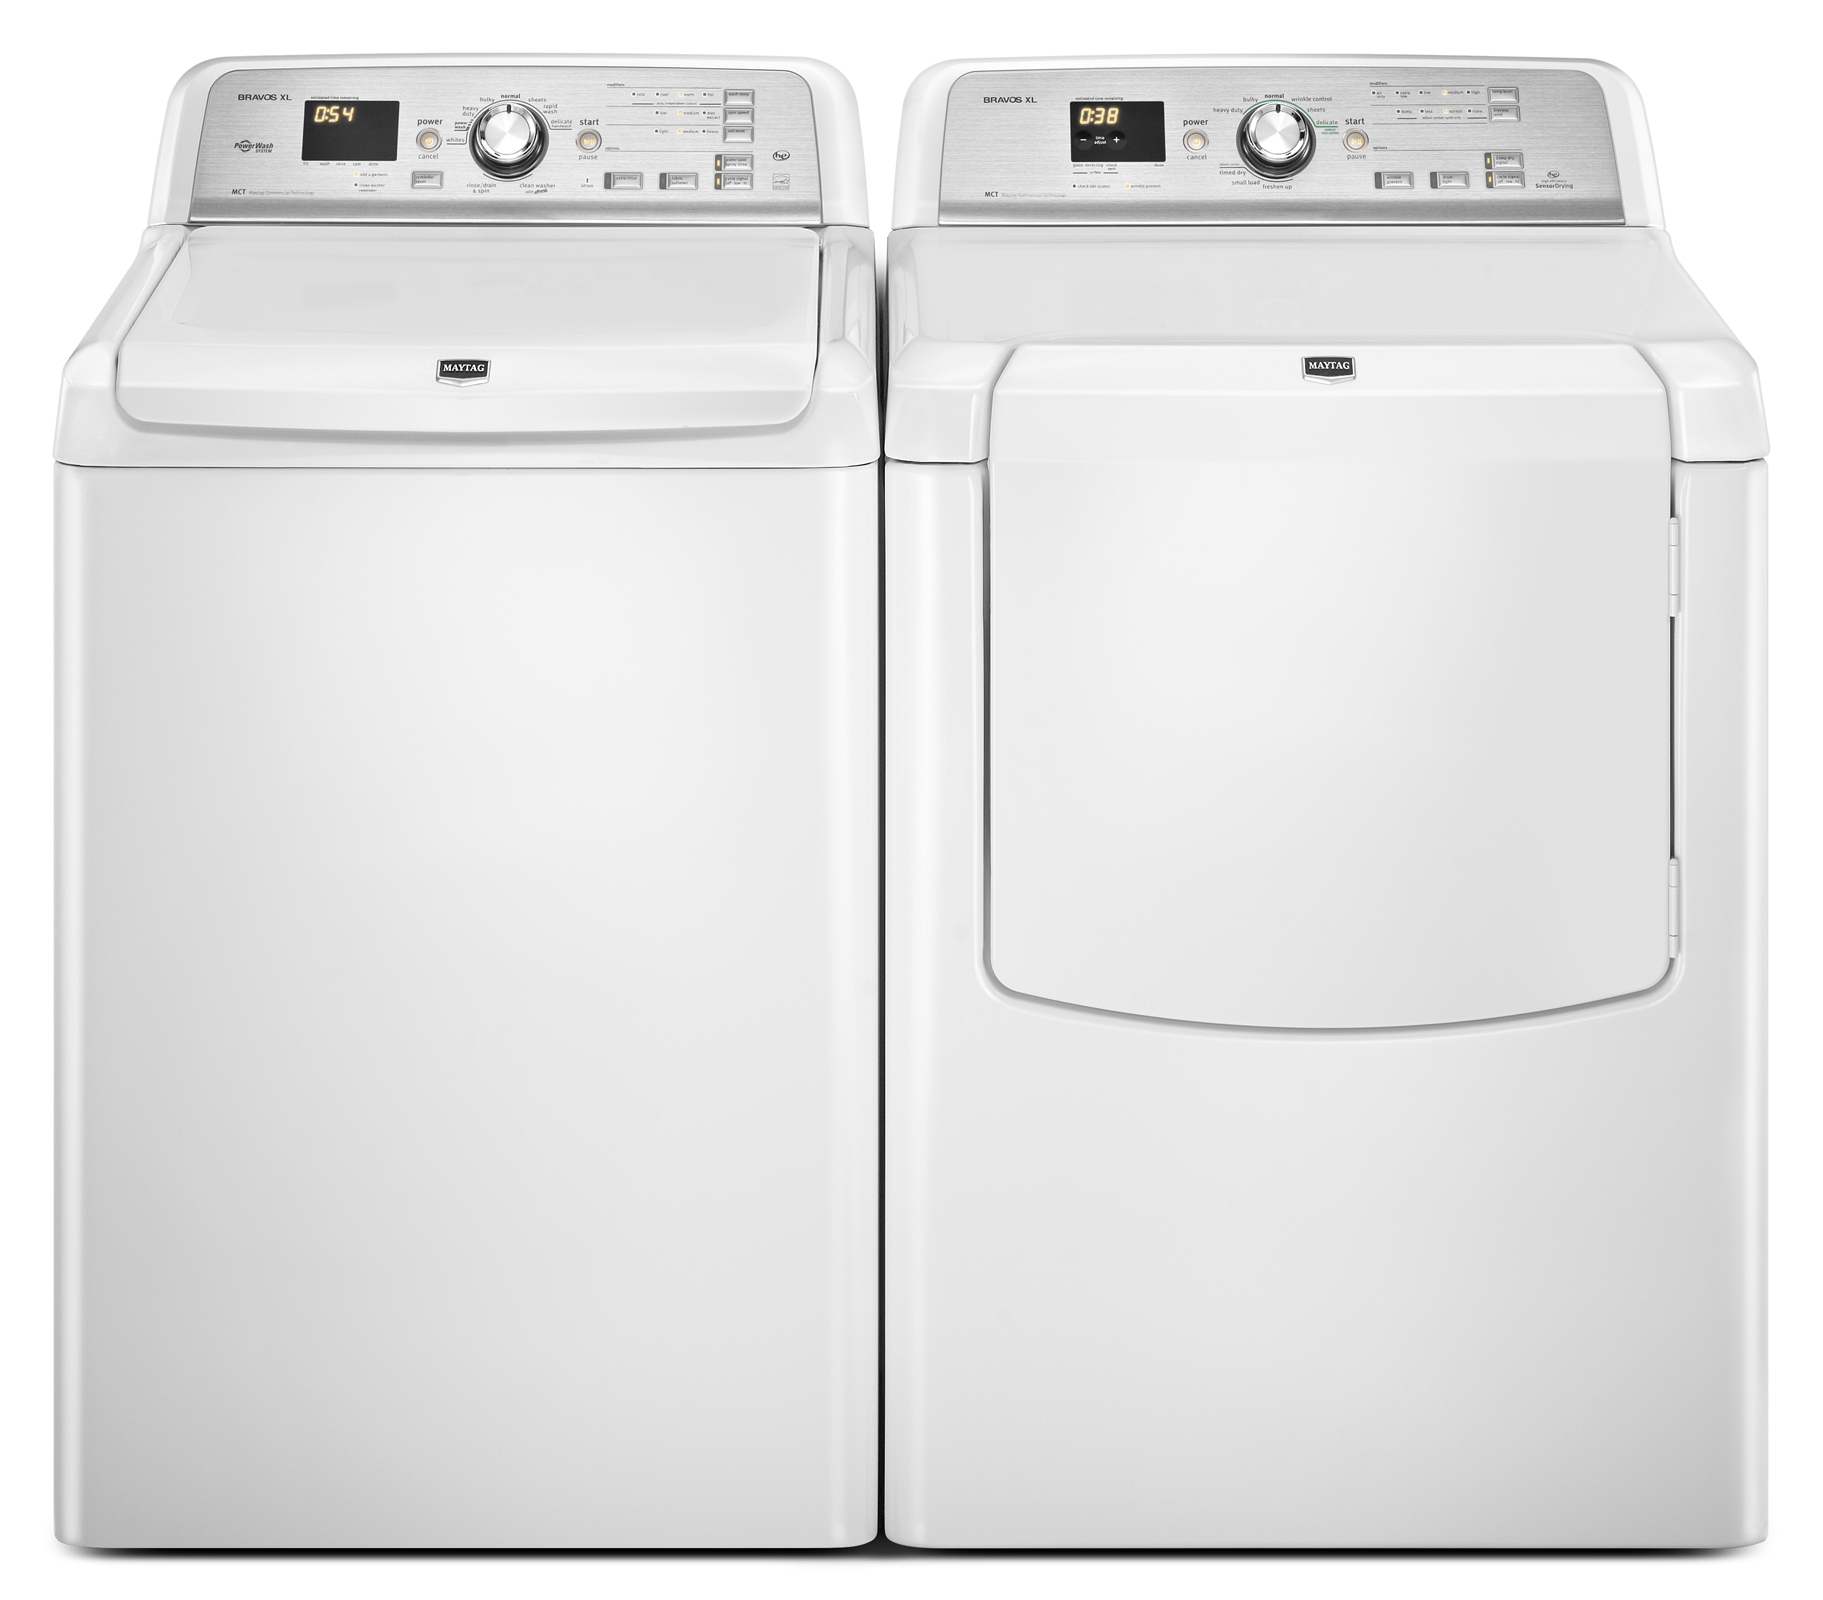 Maytag 7.3 cu. ft. Bravos XL® Gas Dryer w/ Advanced Moisture Sensing - White